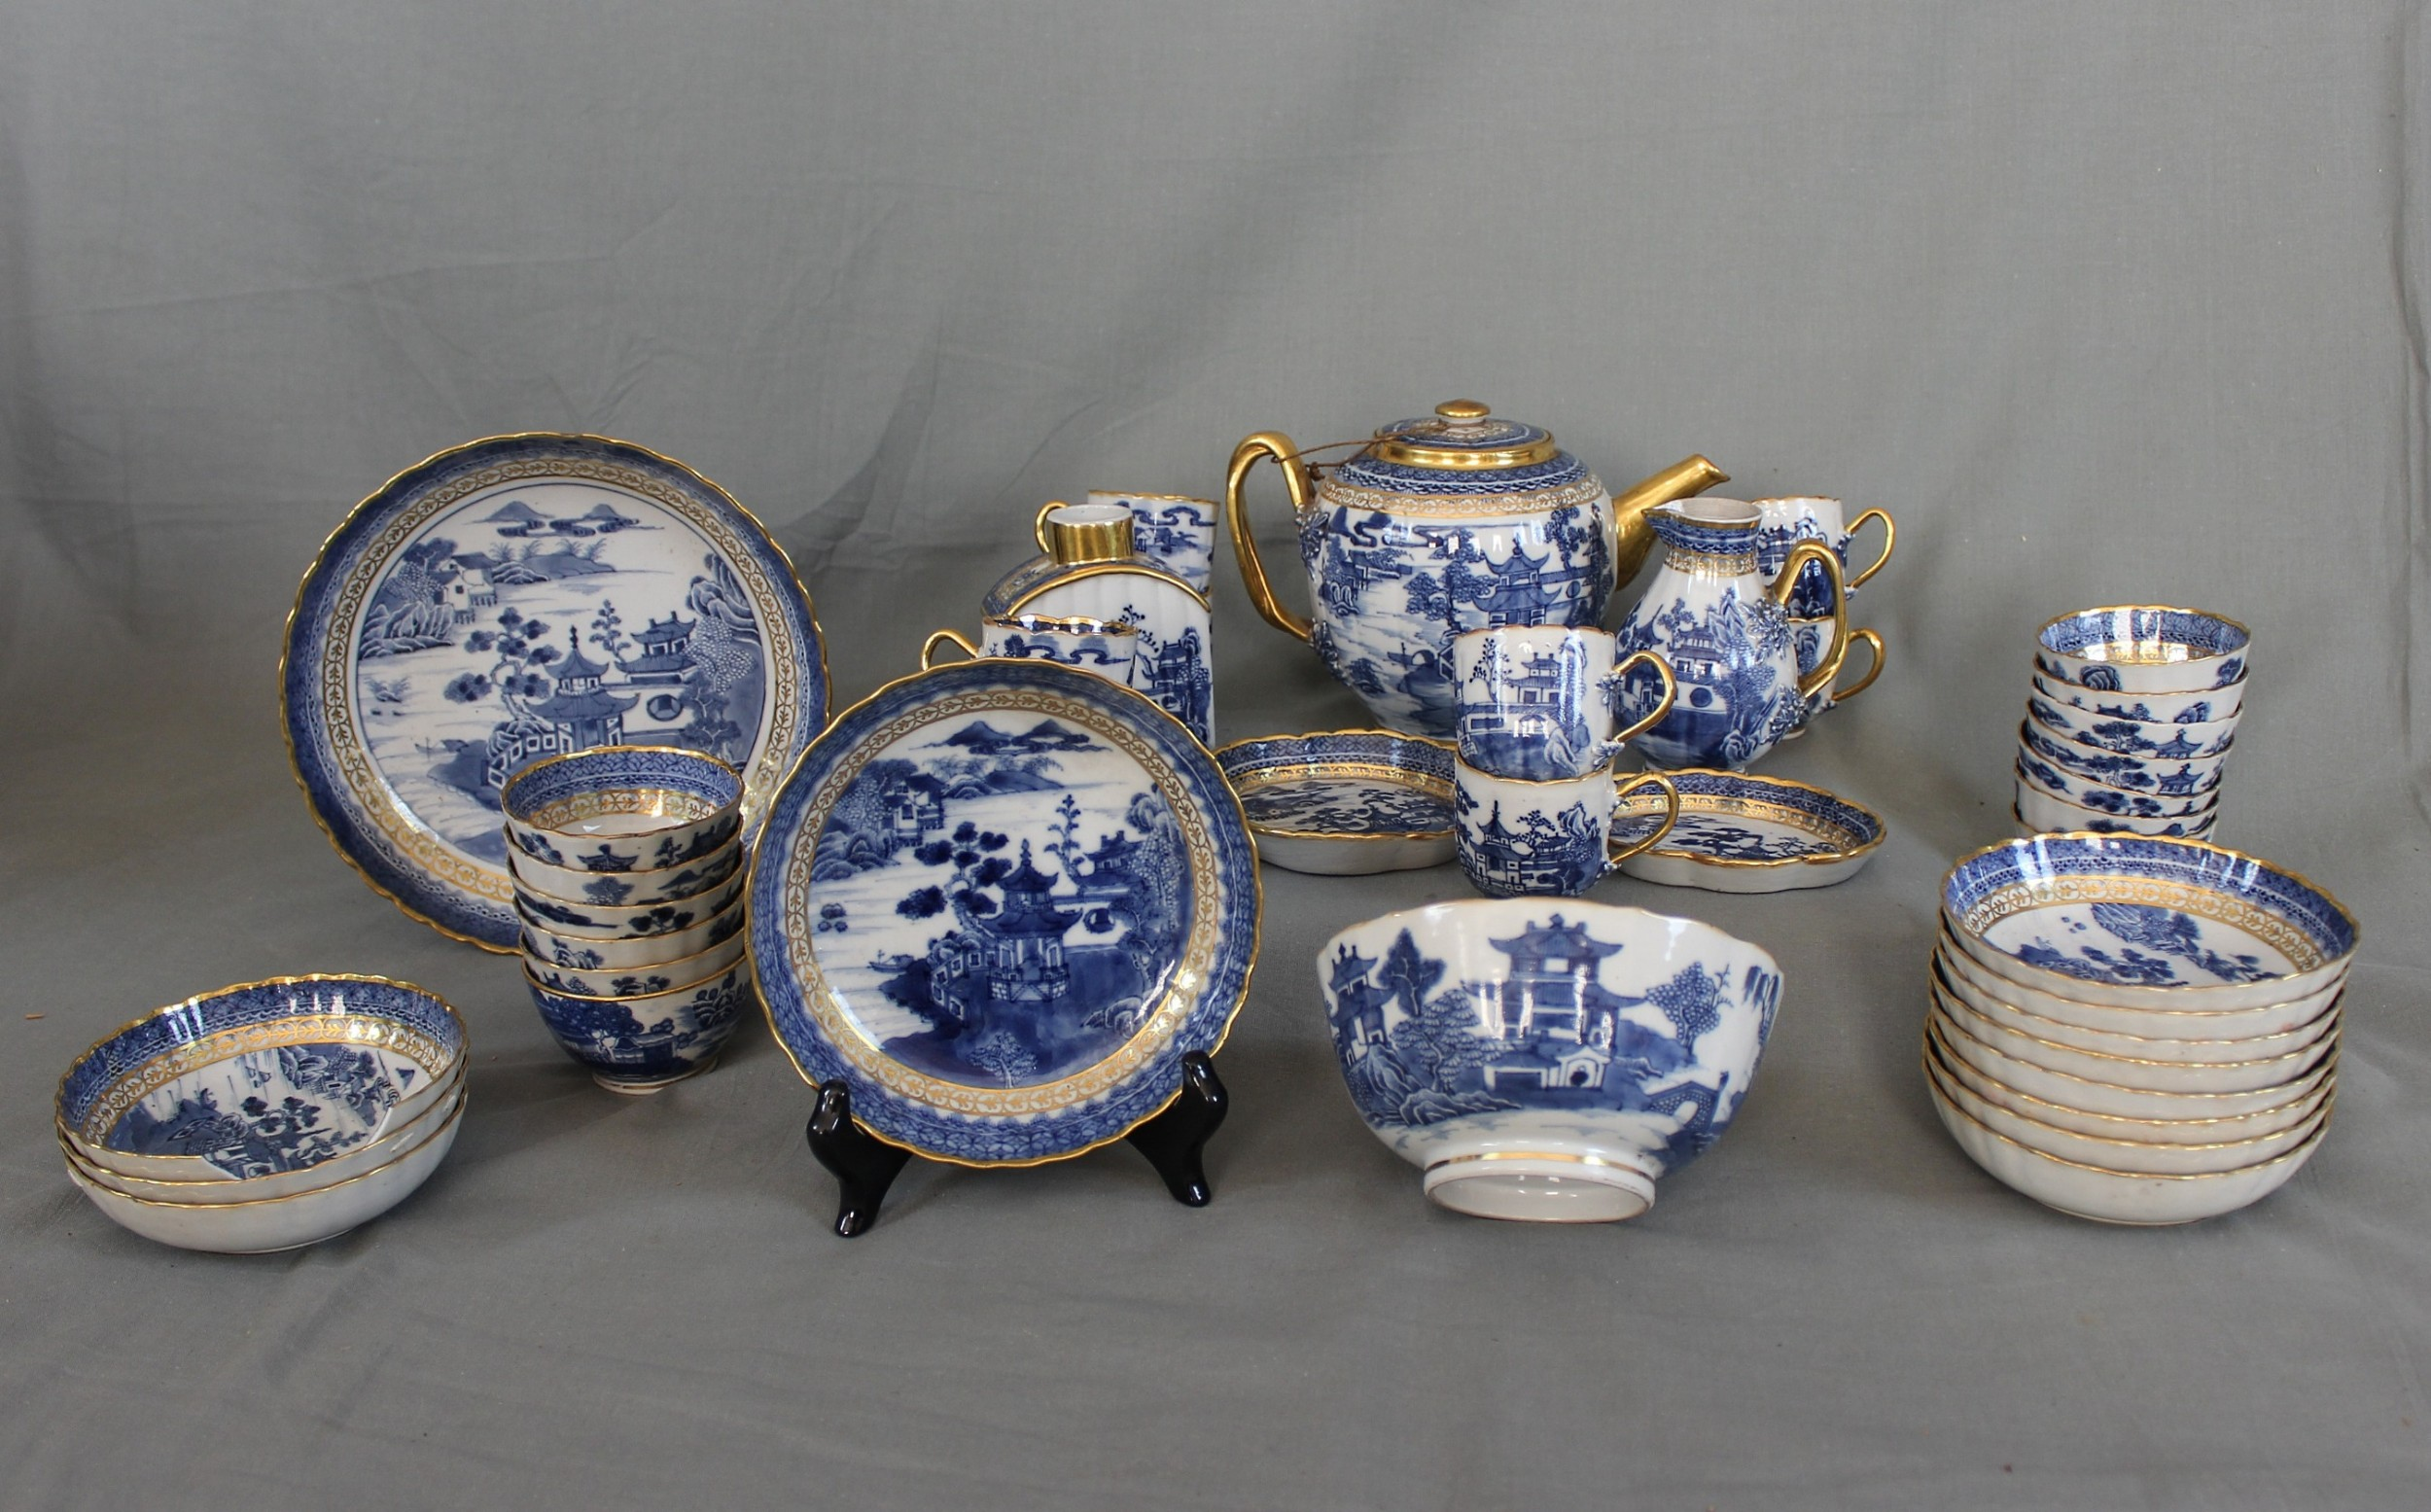 18th century chinese porcelain tea service 39 pieces